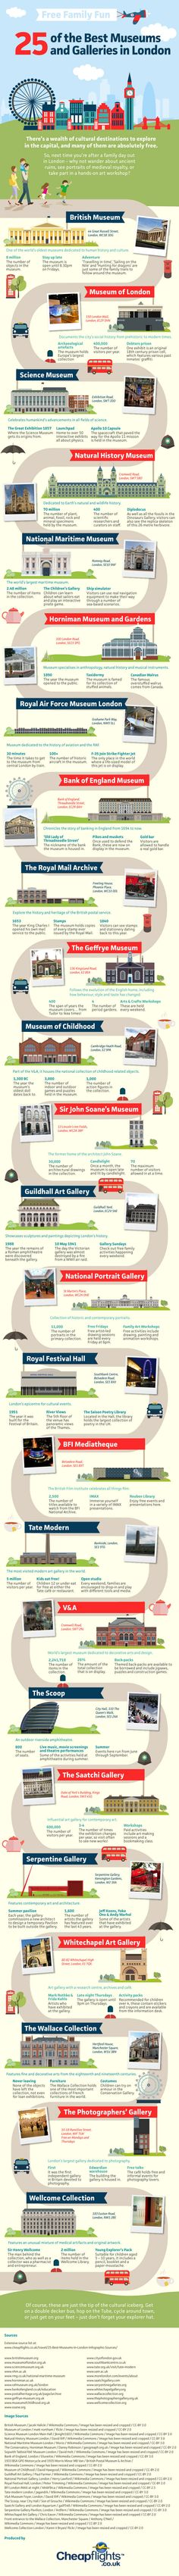 Travel tips: 25 Free Things to do in London  Infographic